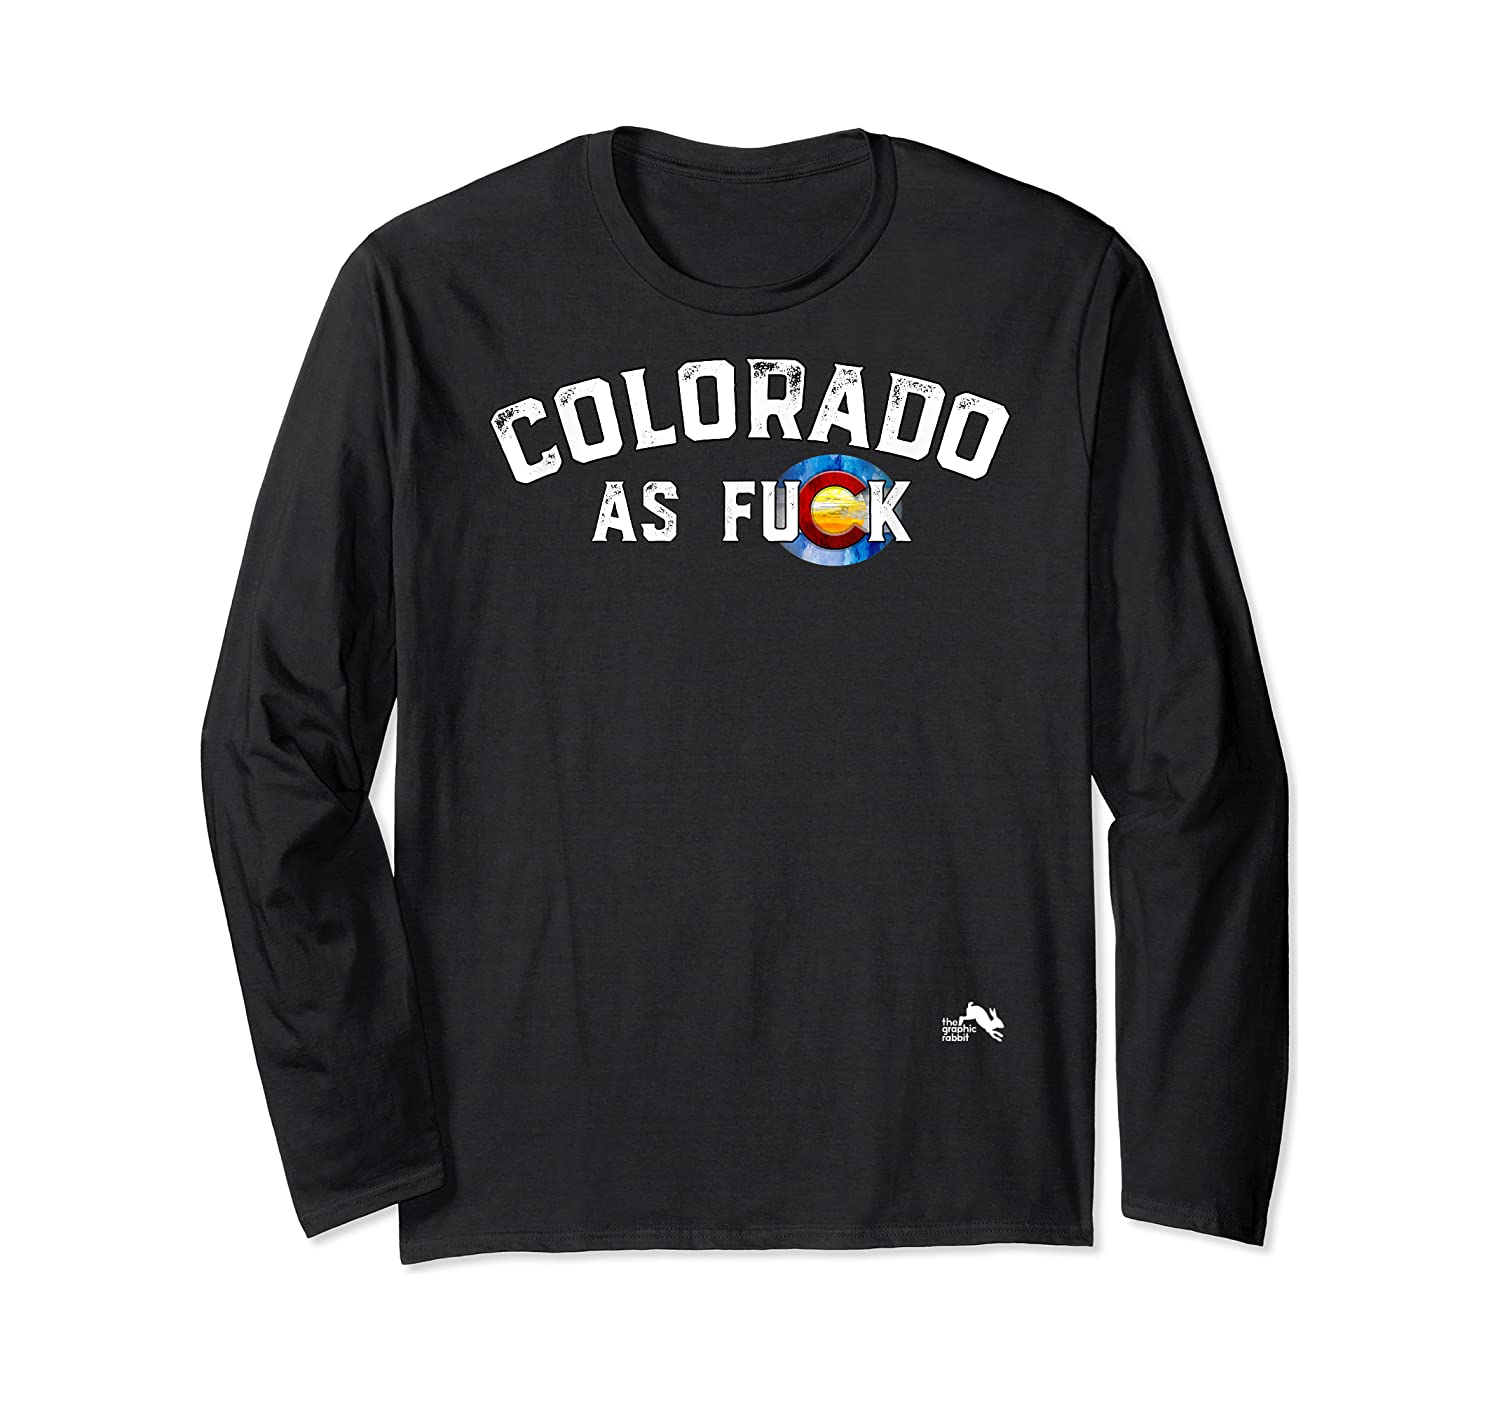 Colorado Shirt Rocky Mountains As Fuck Gift For Cussing Long Sleeve T-shirt